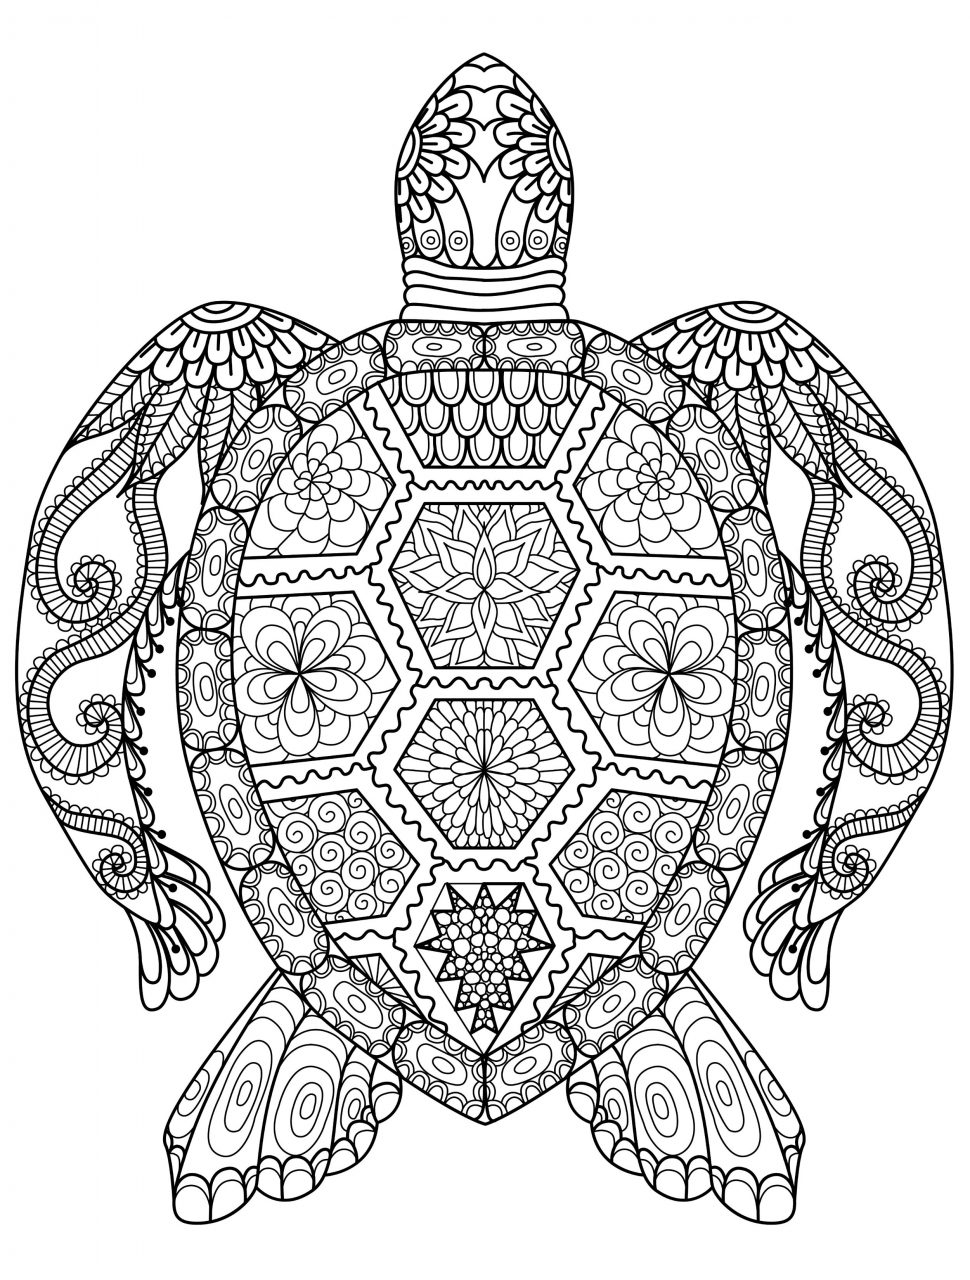 970x1280 Animal Mandala Coloring Pages Printable Adult Book For Inside